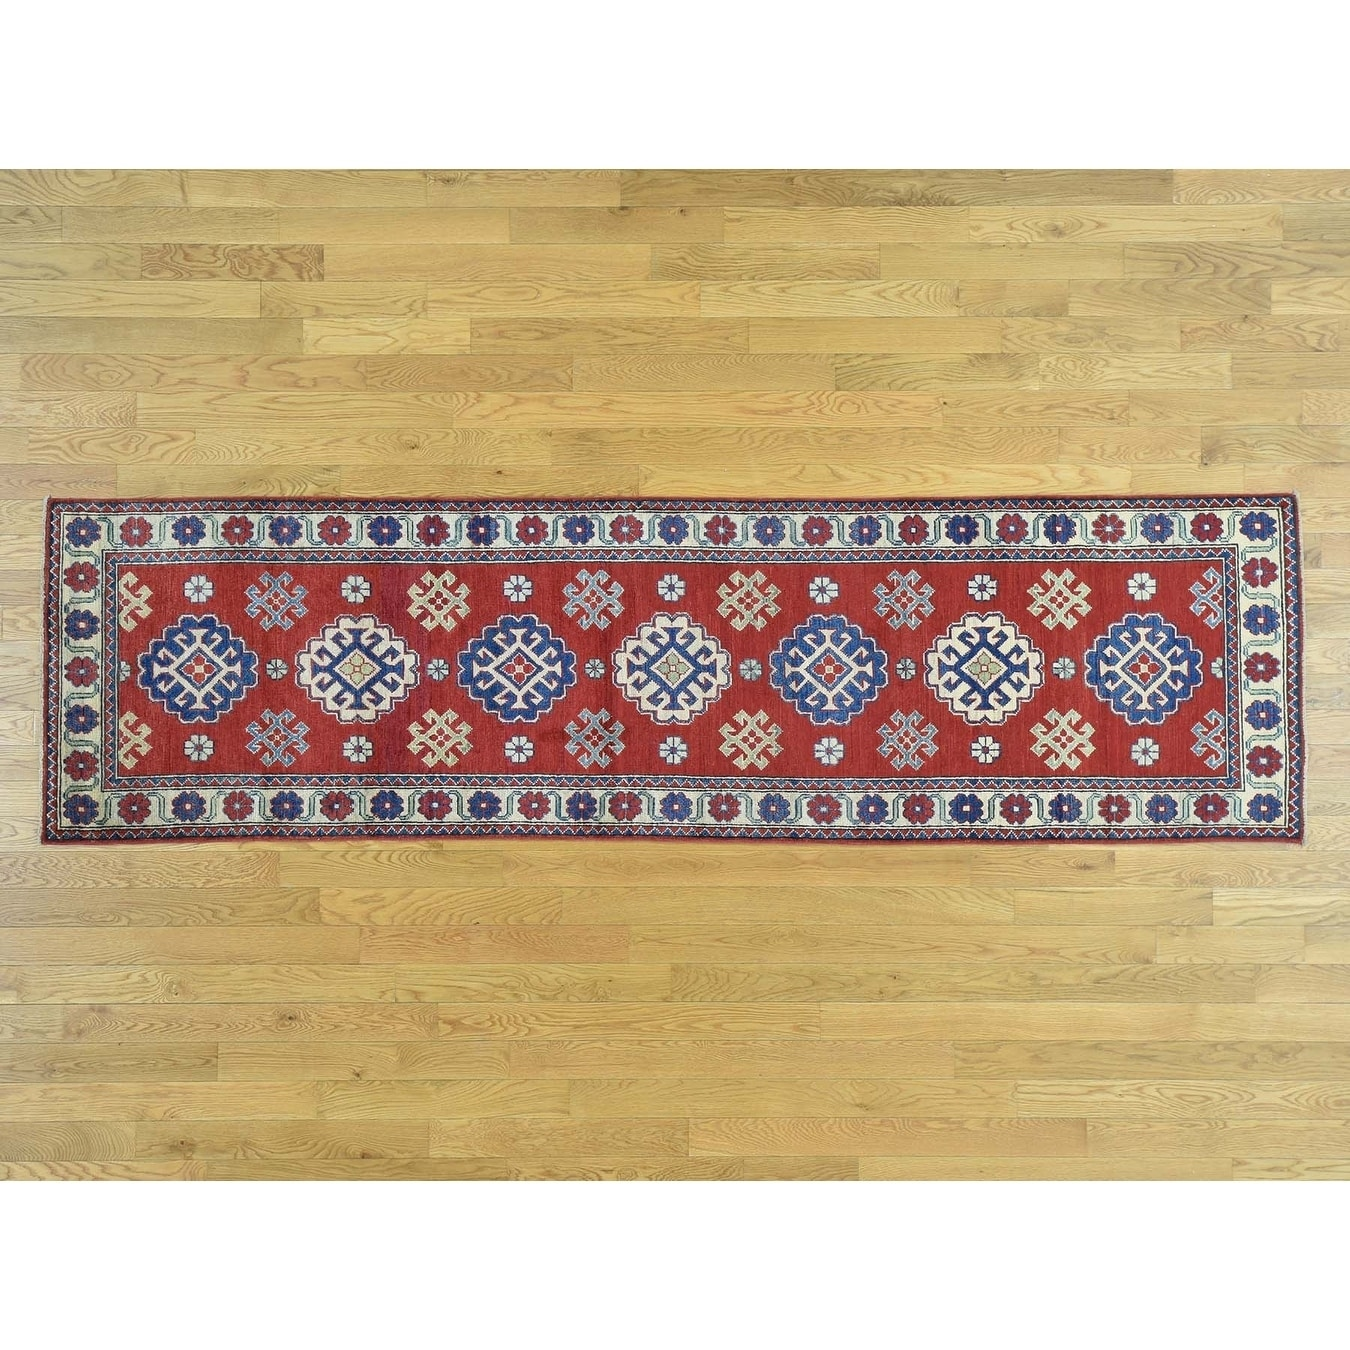 Hand Knotted Red Kazak with Wool Oriental Rug - 28 x 99